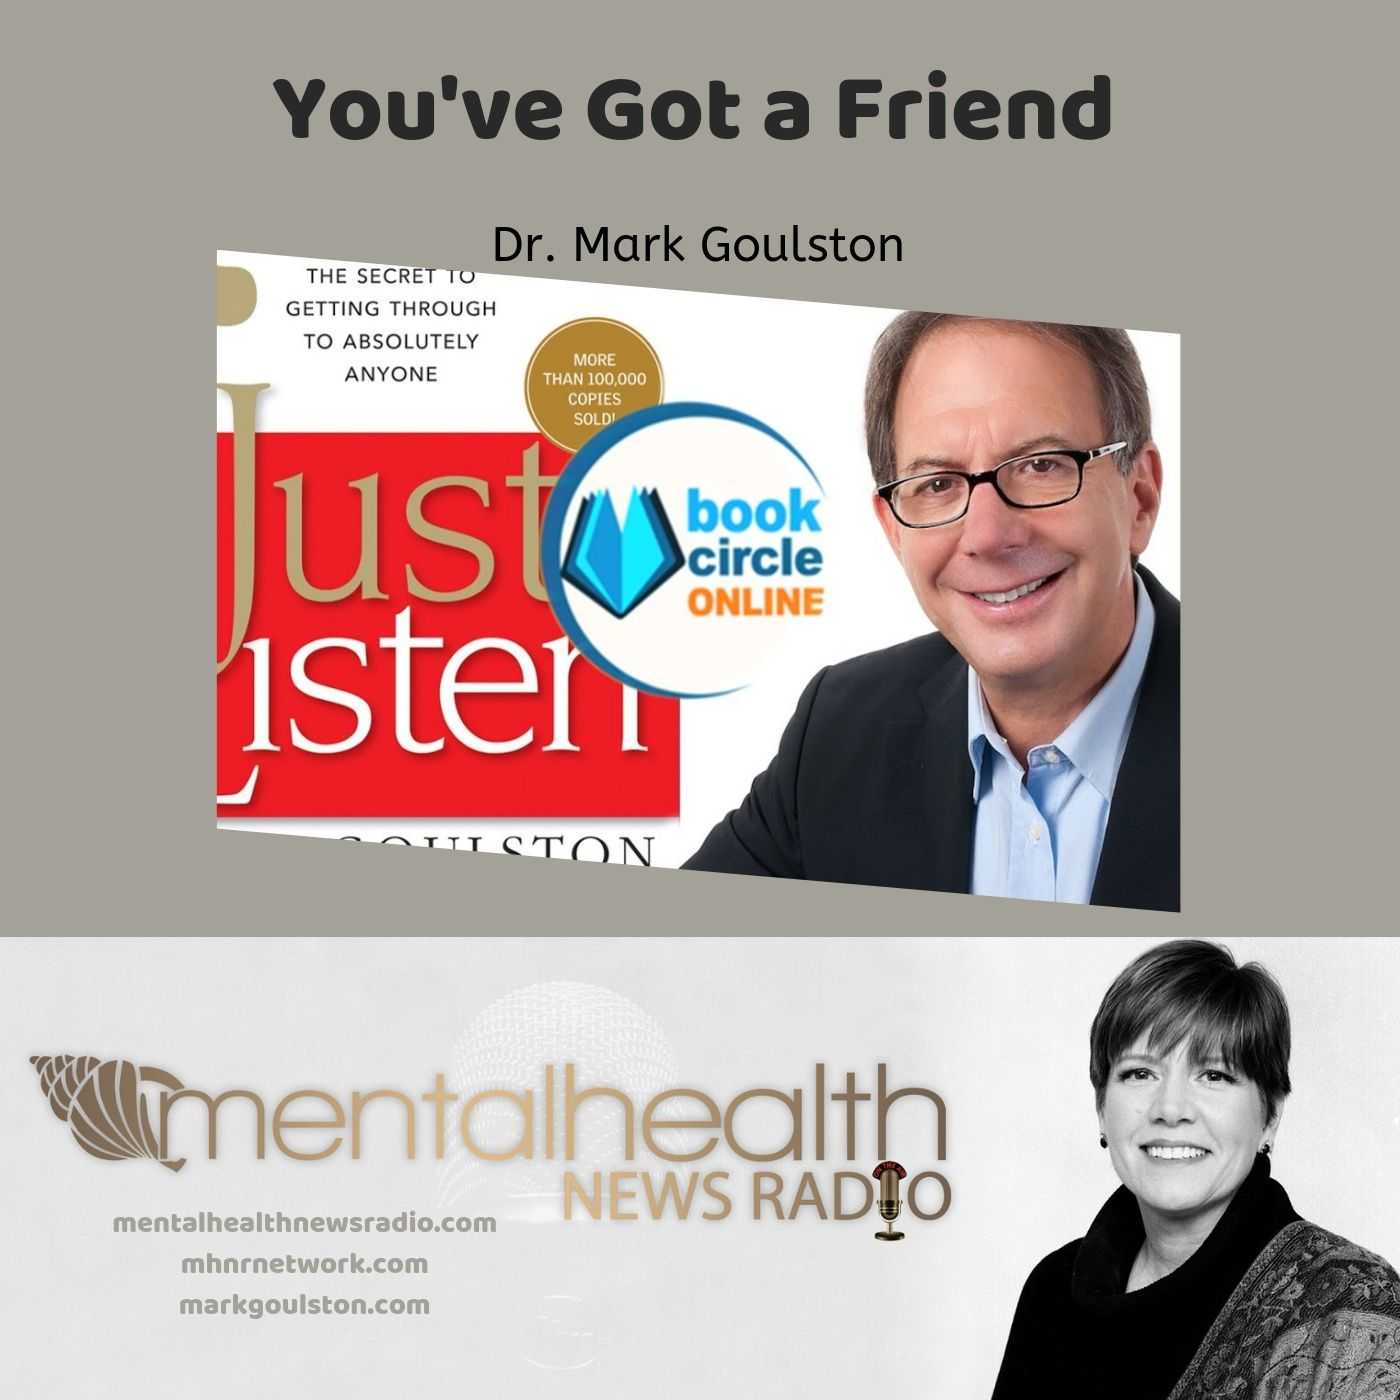 Mental Health News Radio - You've Got a Friend with Dr. Mark Goulston